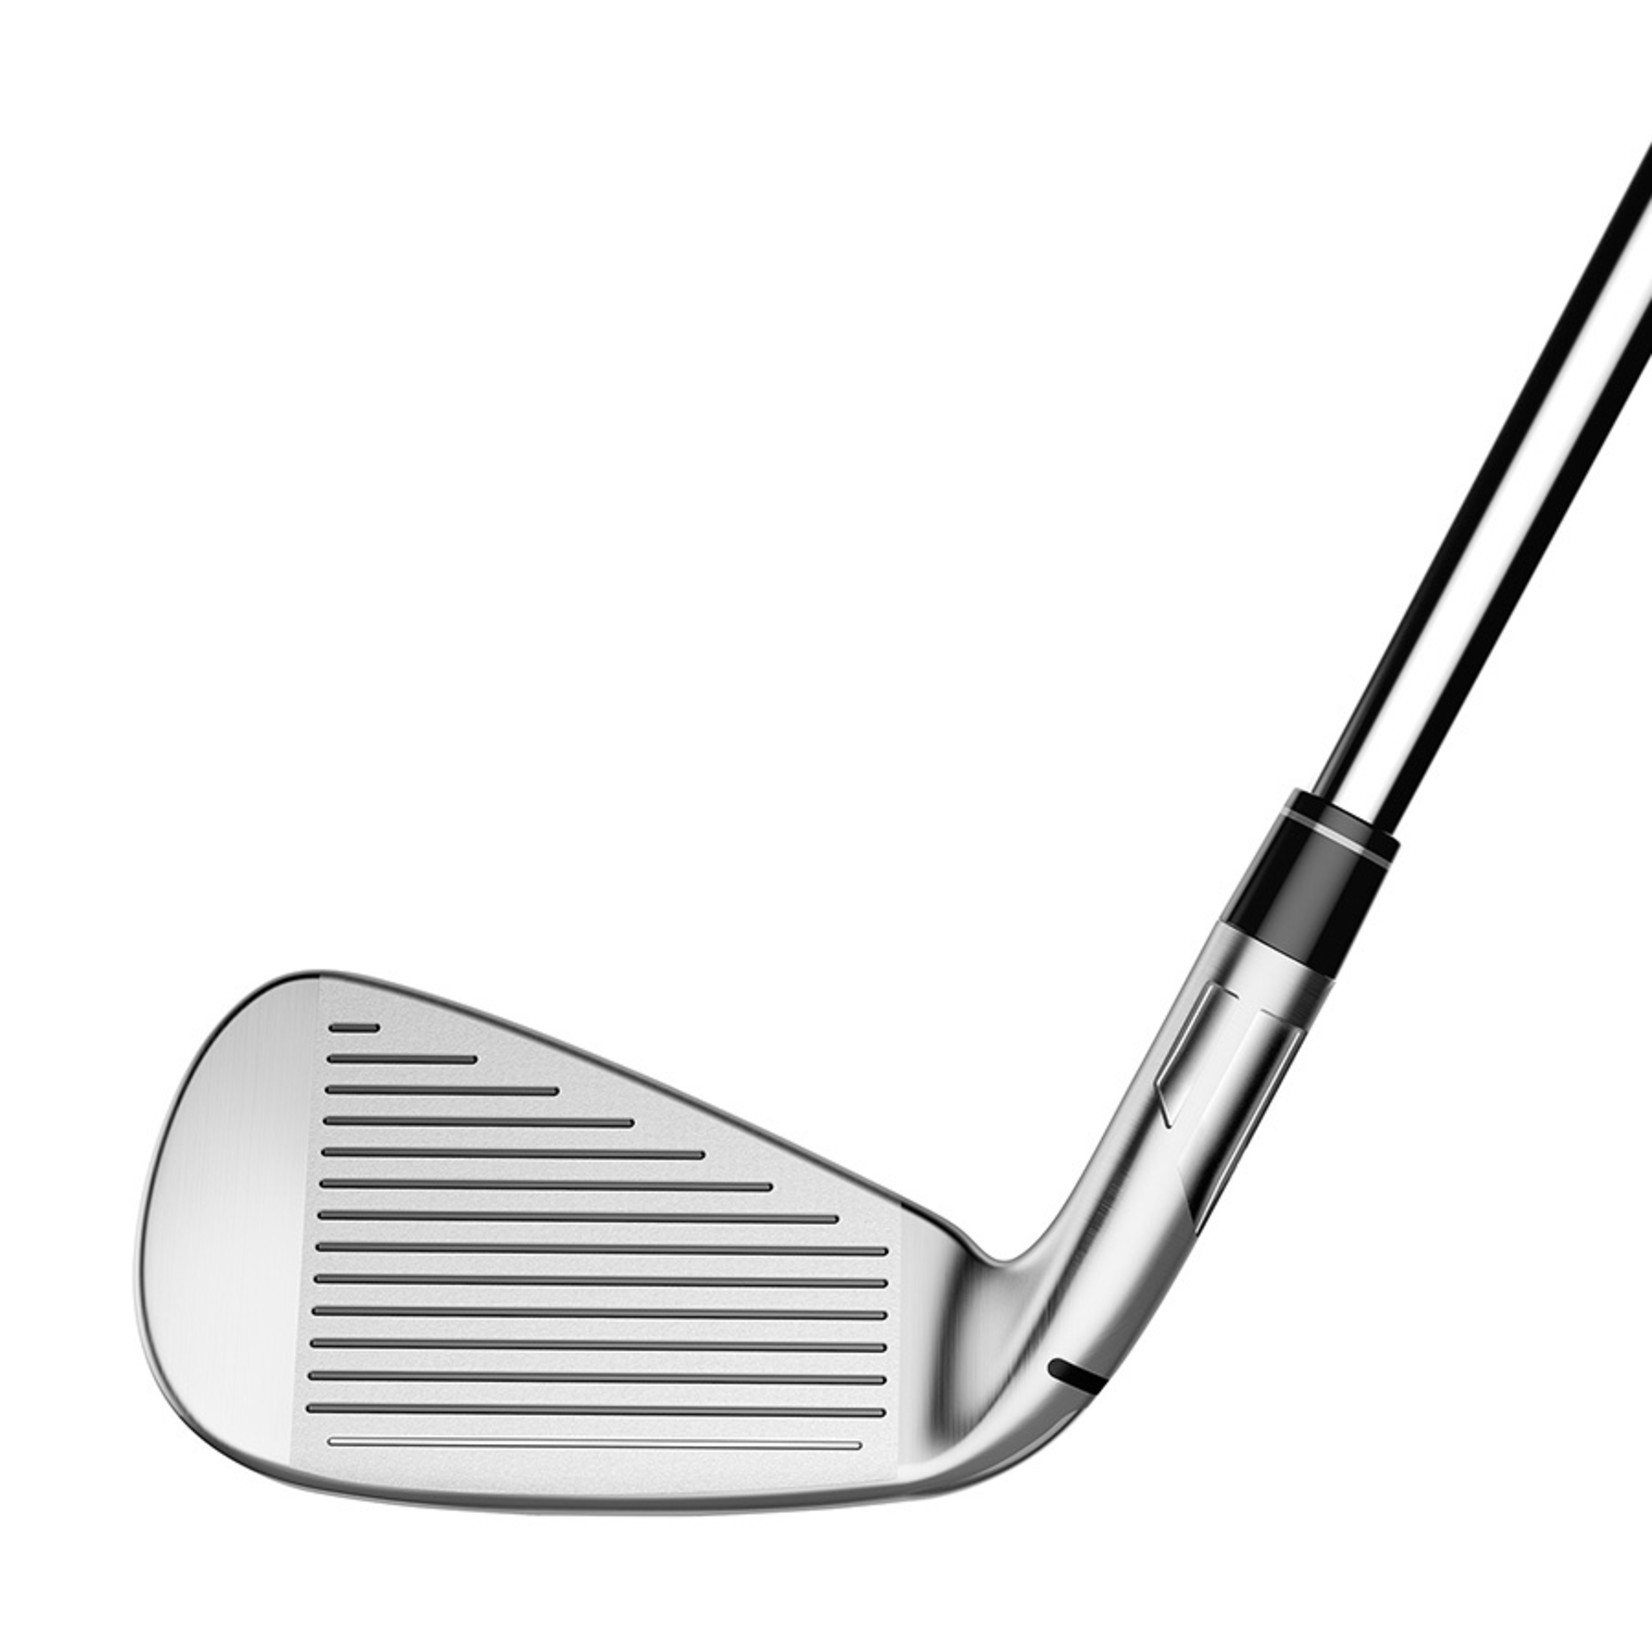 TaylorMade SIM2 Max Irons 7pc. - Graphite Shafts